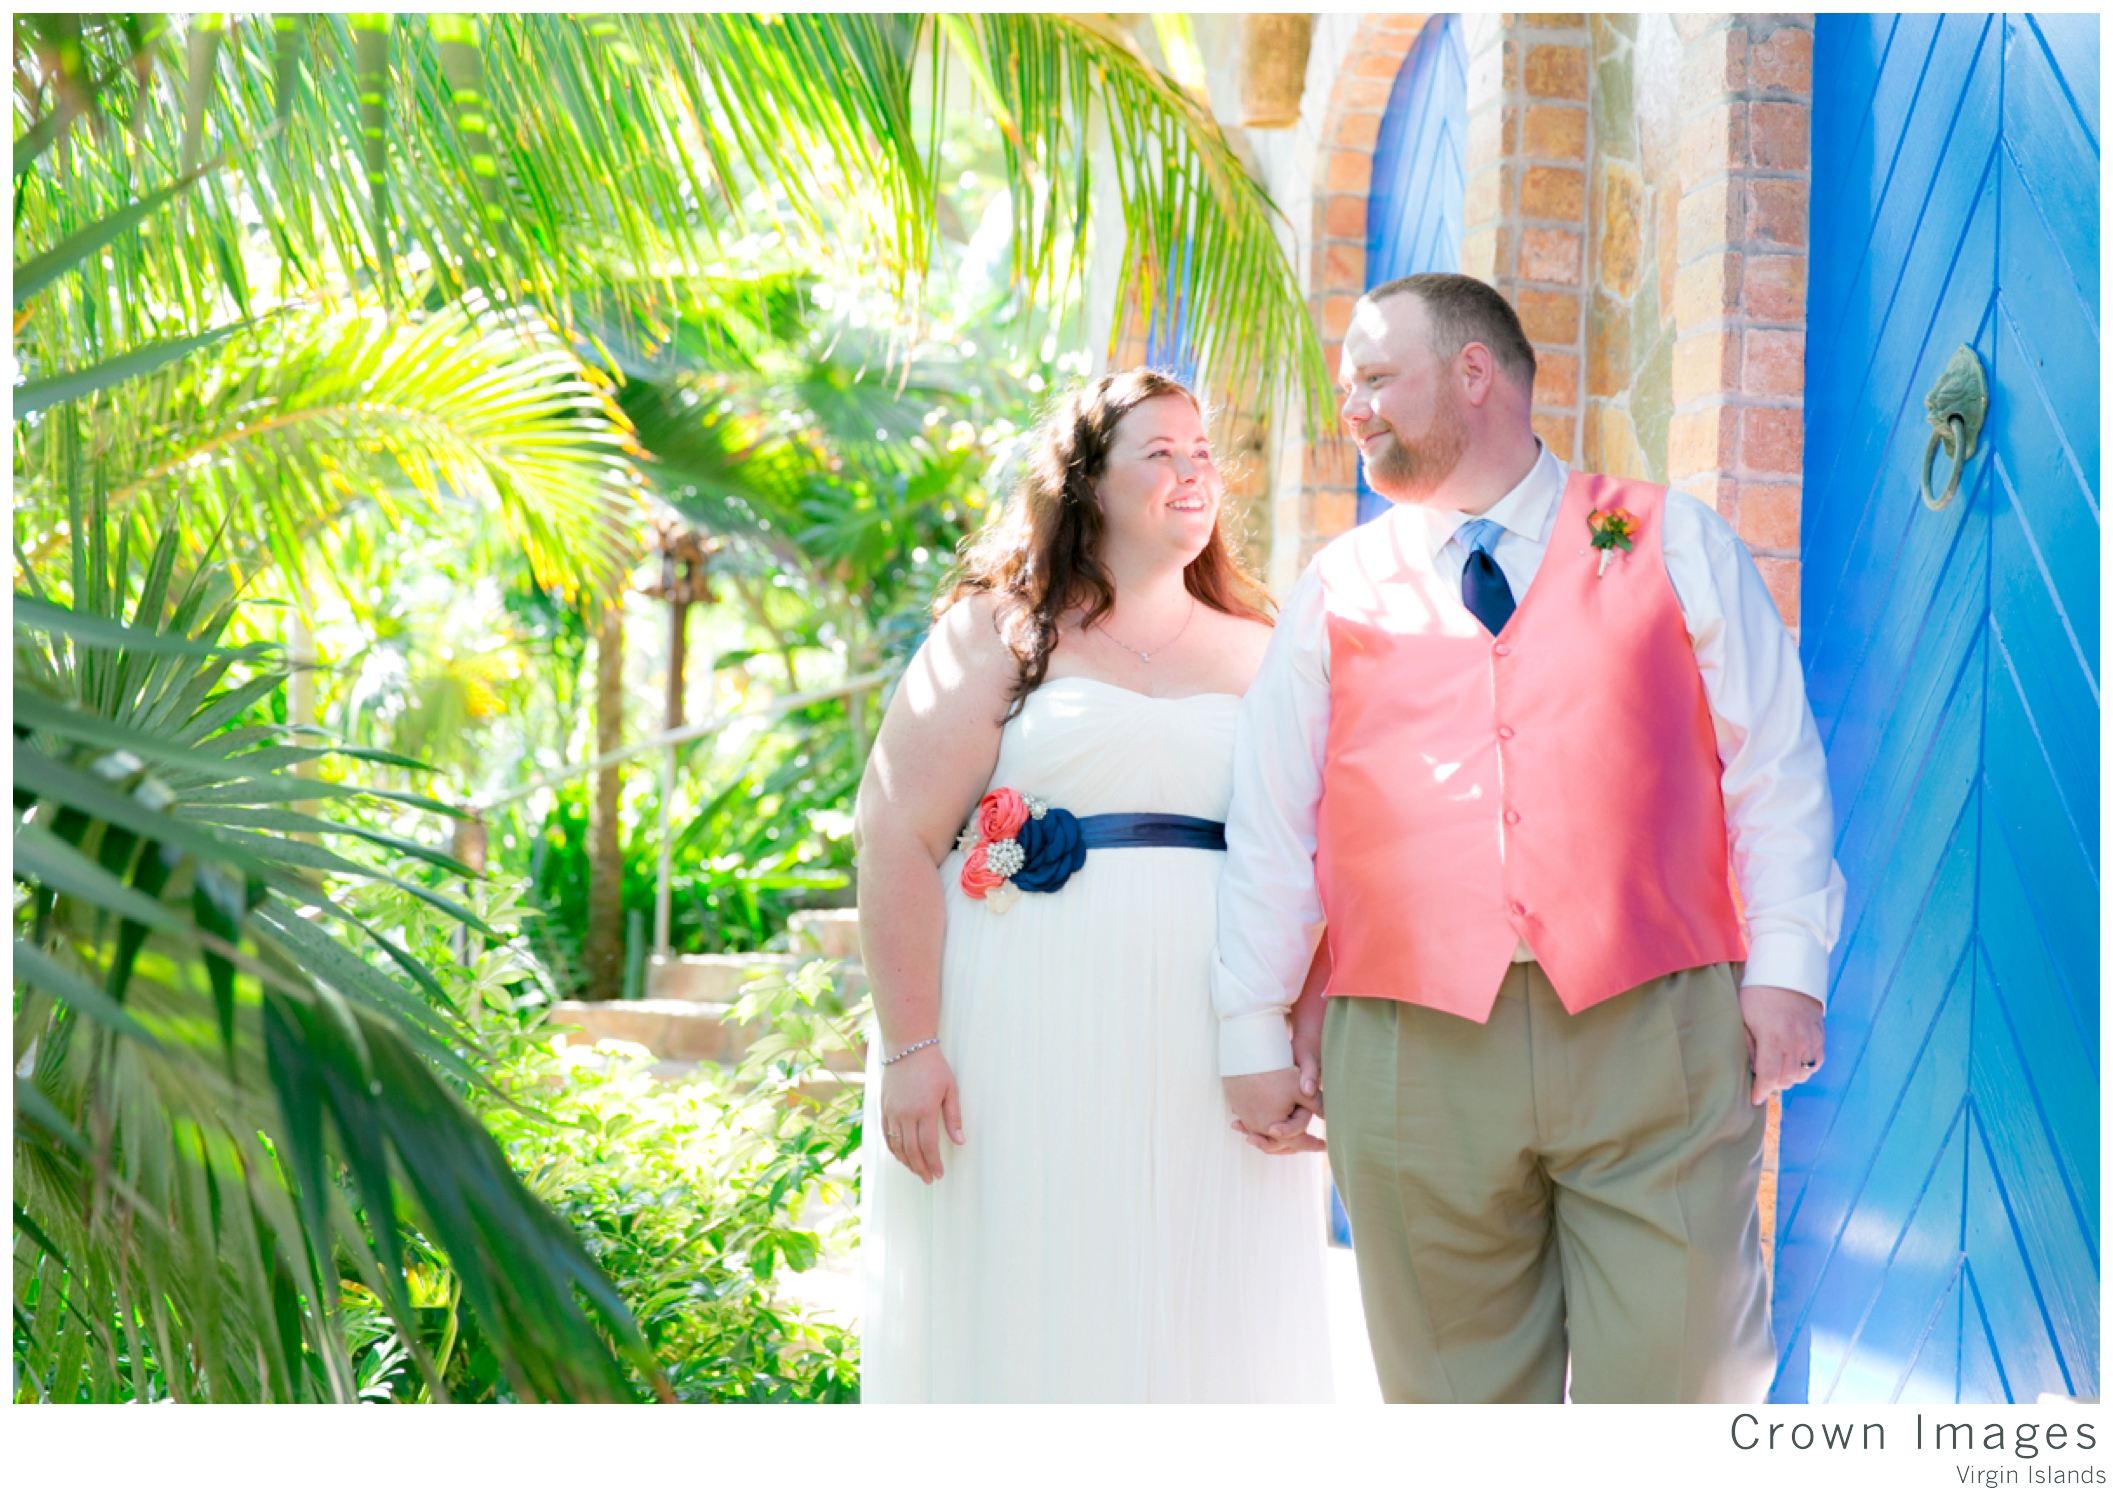 st_thomas_wedding_photographer_crown_images_0786.jpg